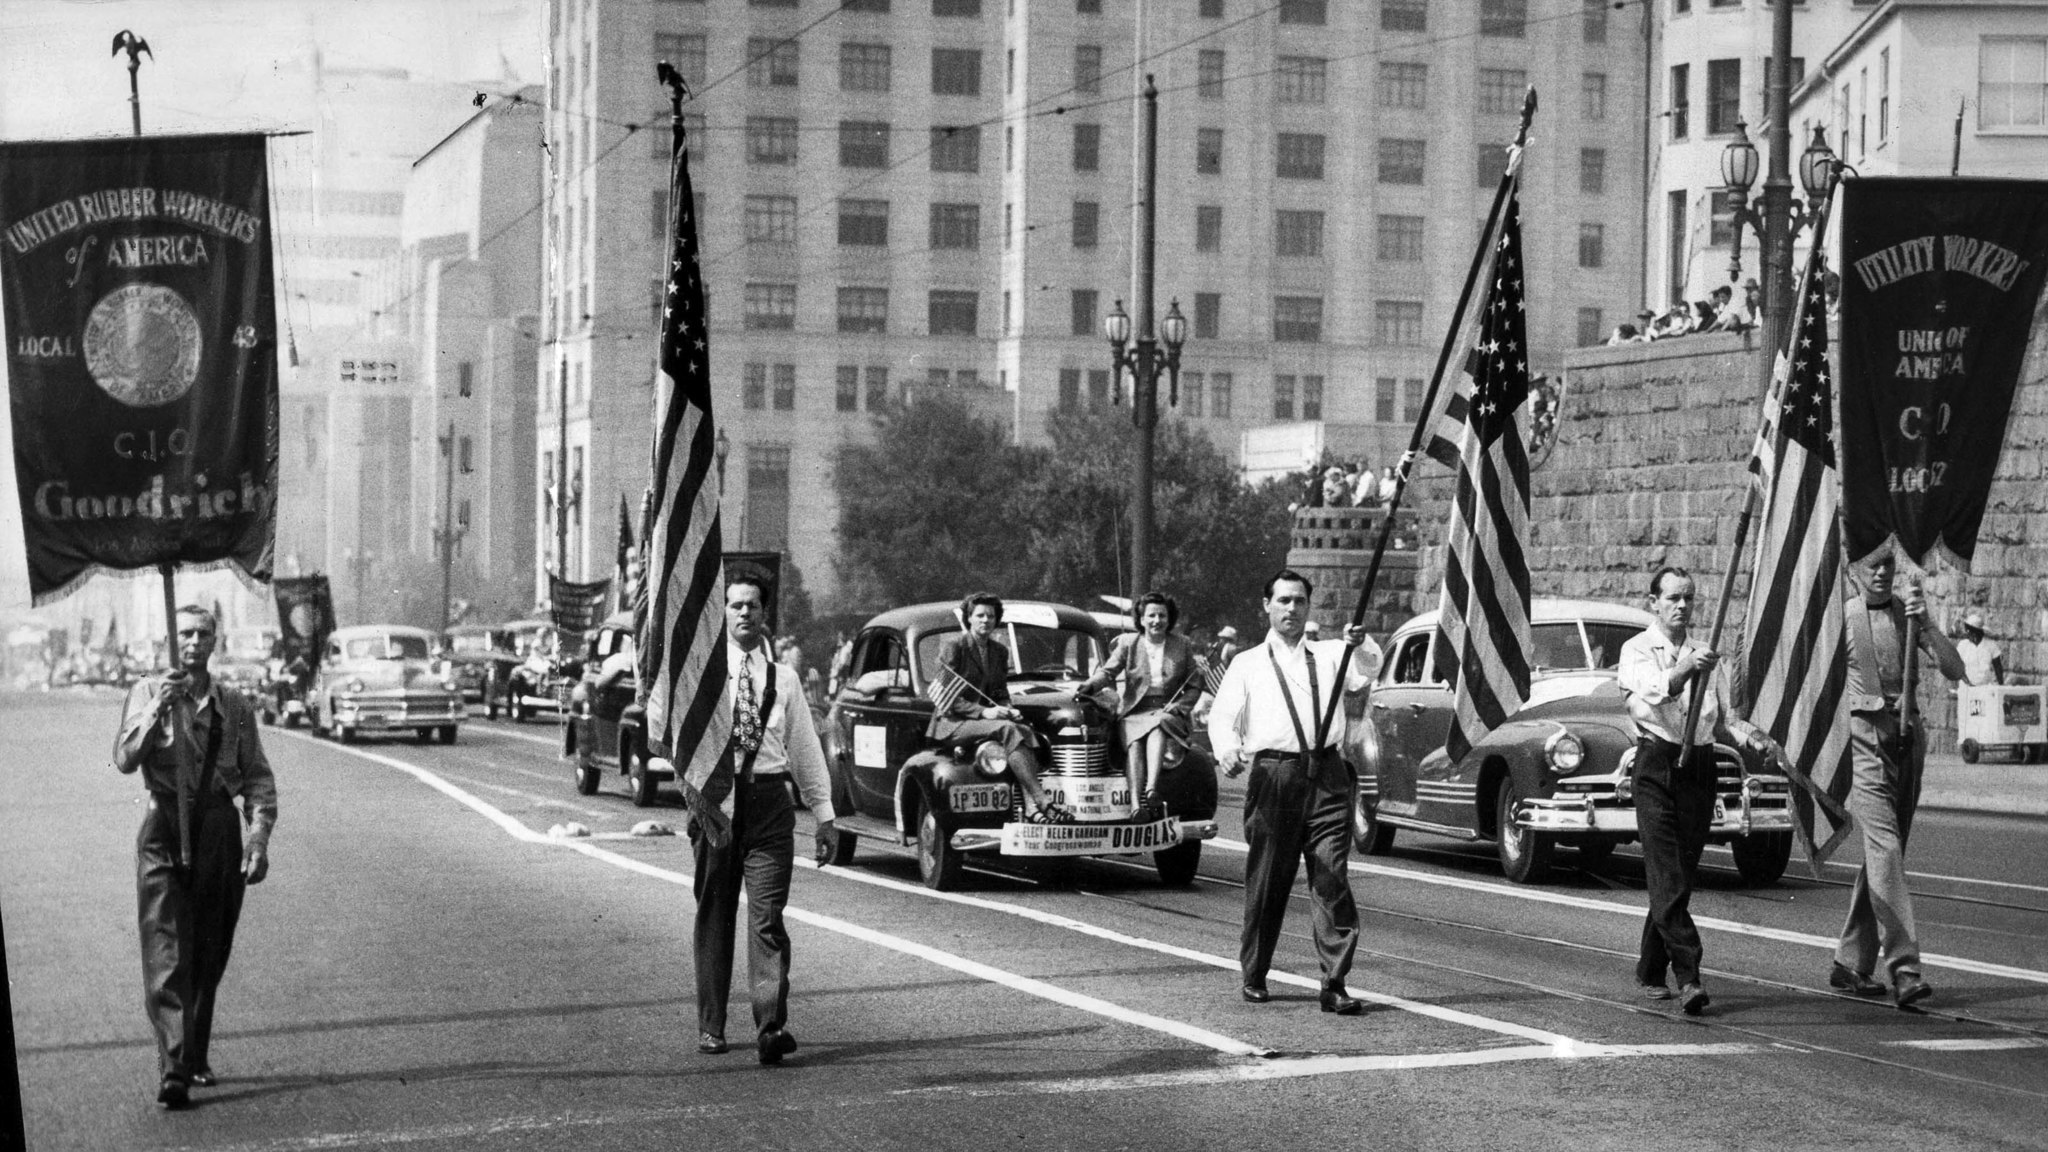 Sep. 6, 1948: The American Federation of Labor Color Guard leads the Labor Day Parade on Spring Stre